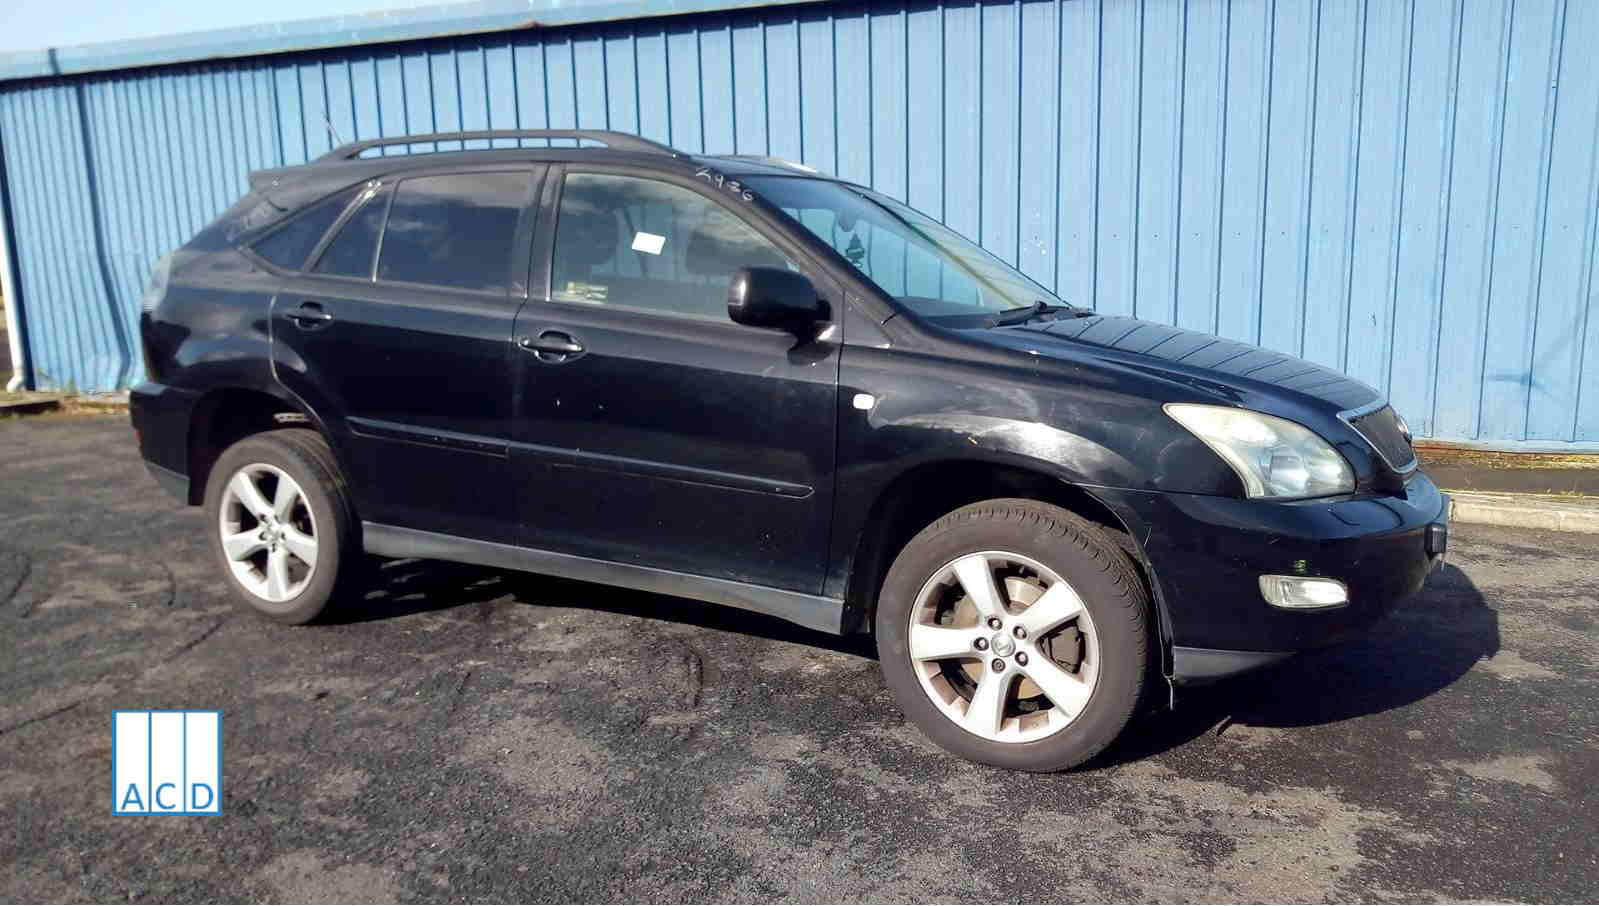 Lexus RX300SE 3.0L Petrol 5-Speed Automatic 2003 #2986 01